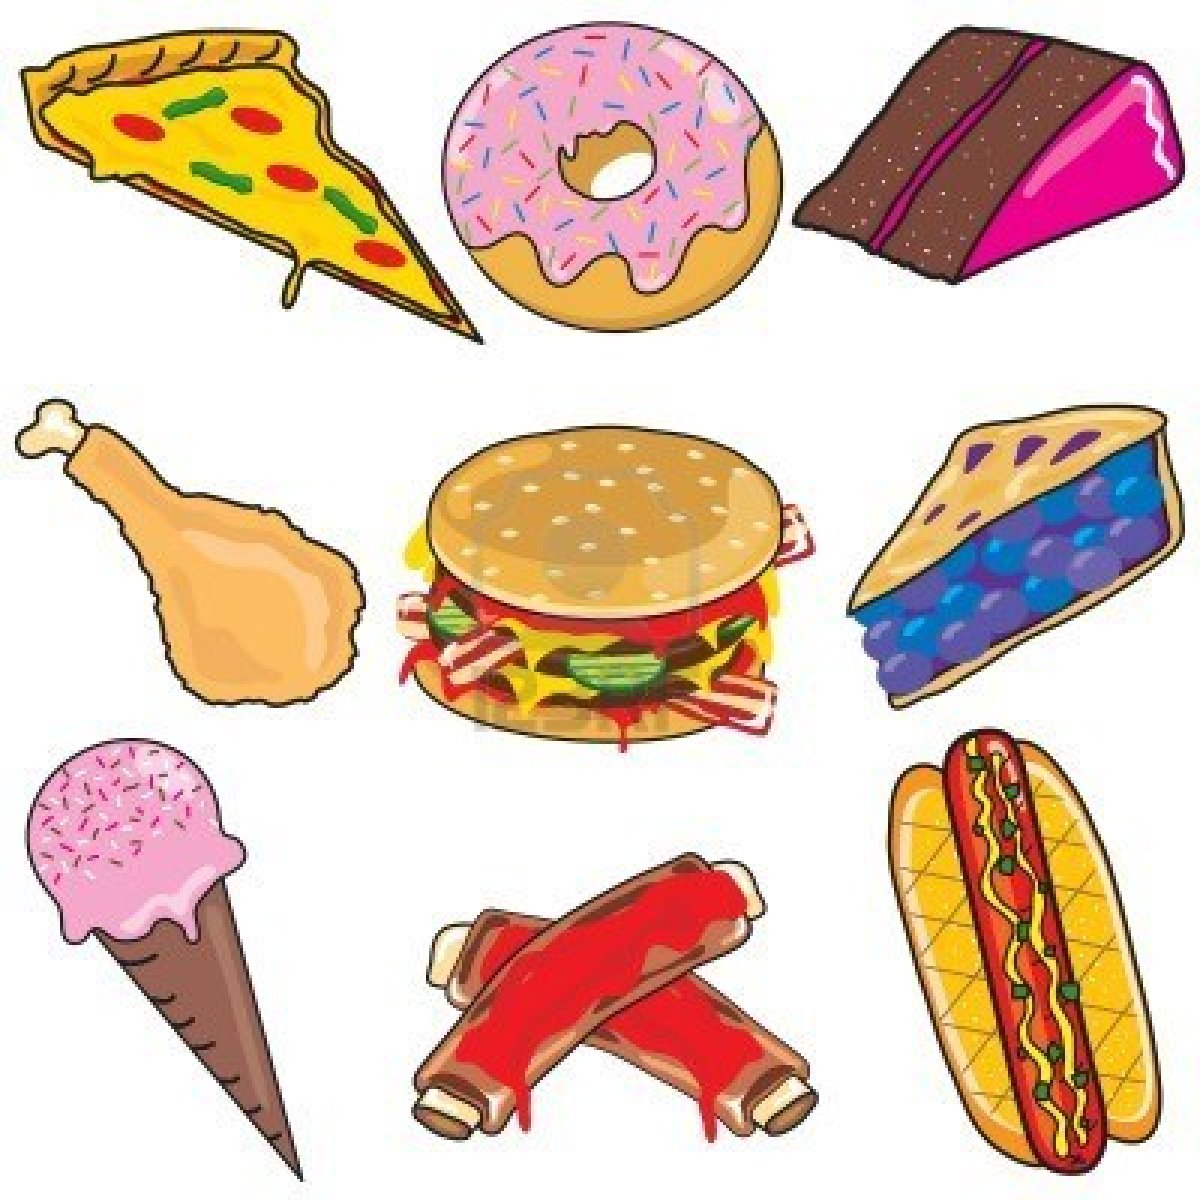 Oil clipart healthy junk food Search Pinterest junk Eat Healthy